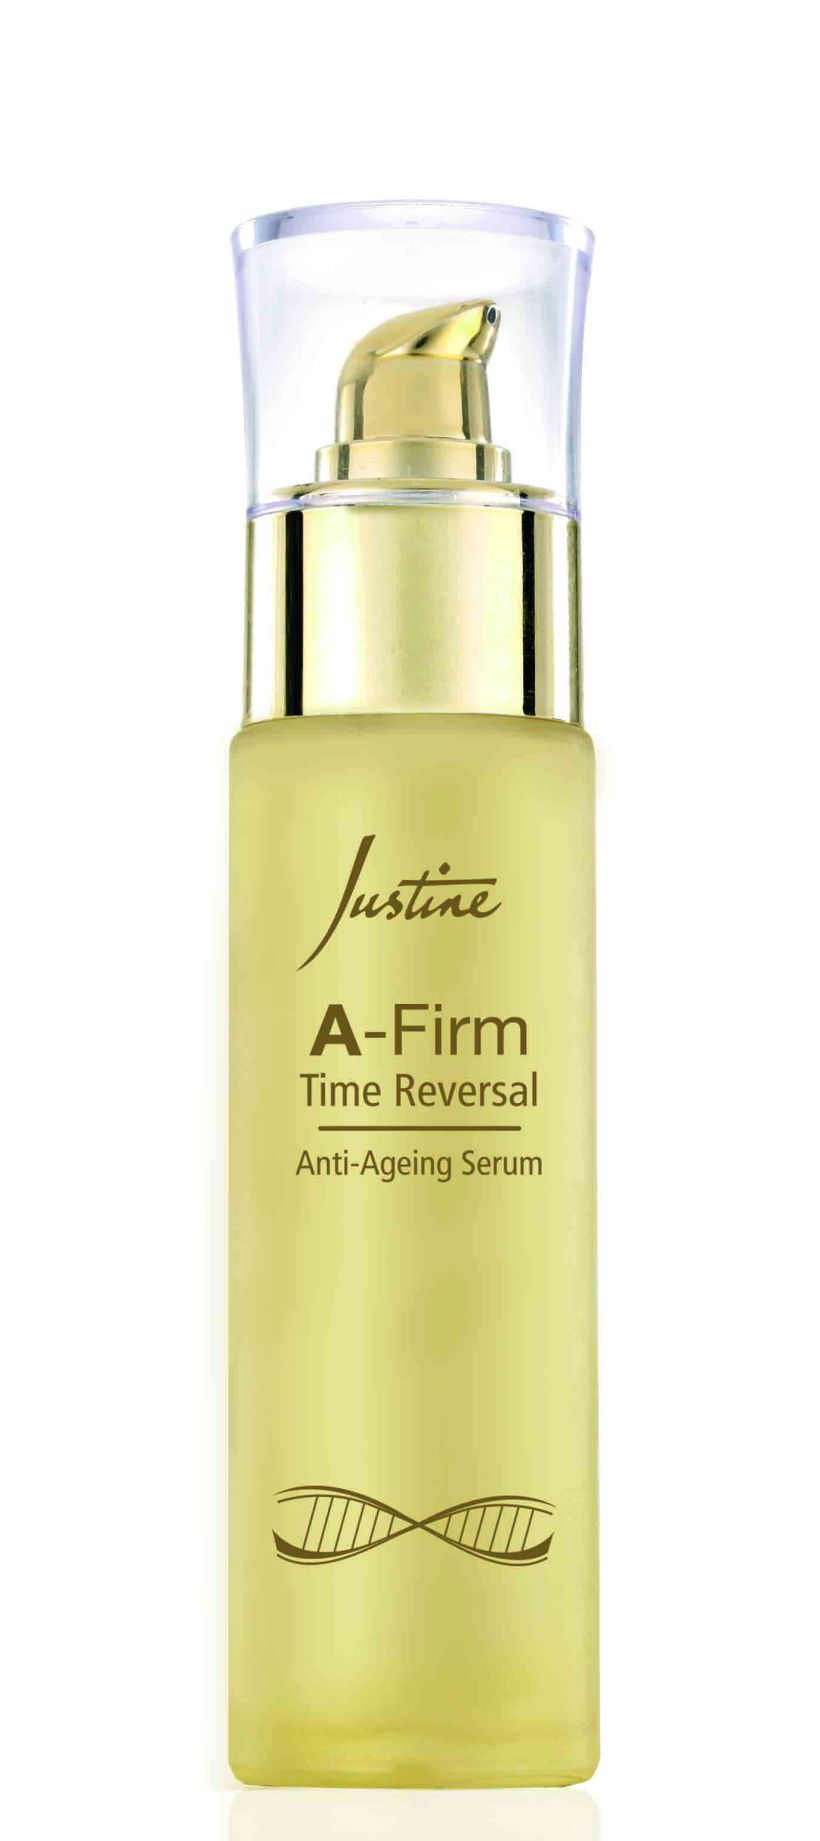 A-firm time reversal serum